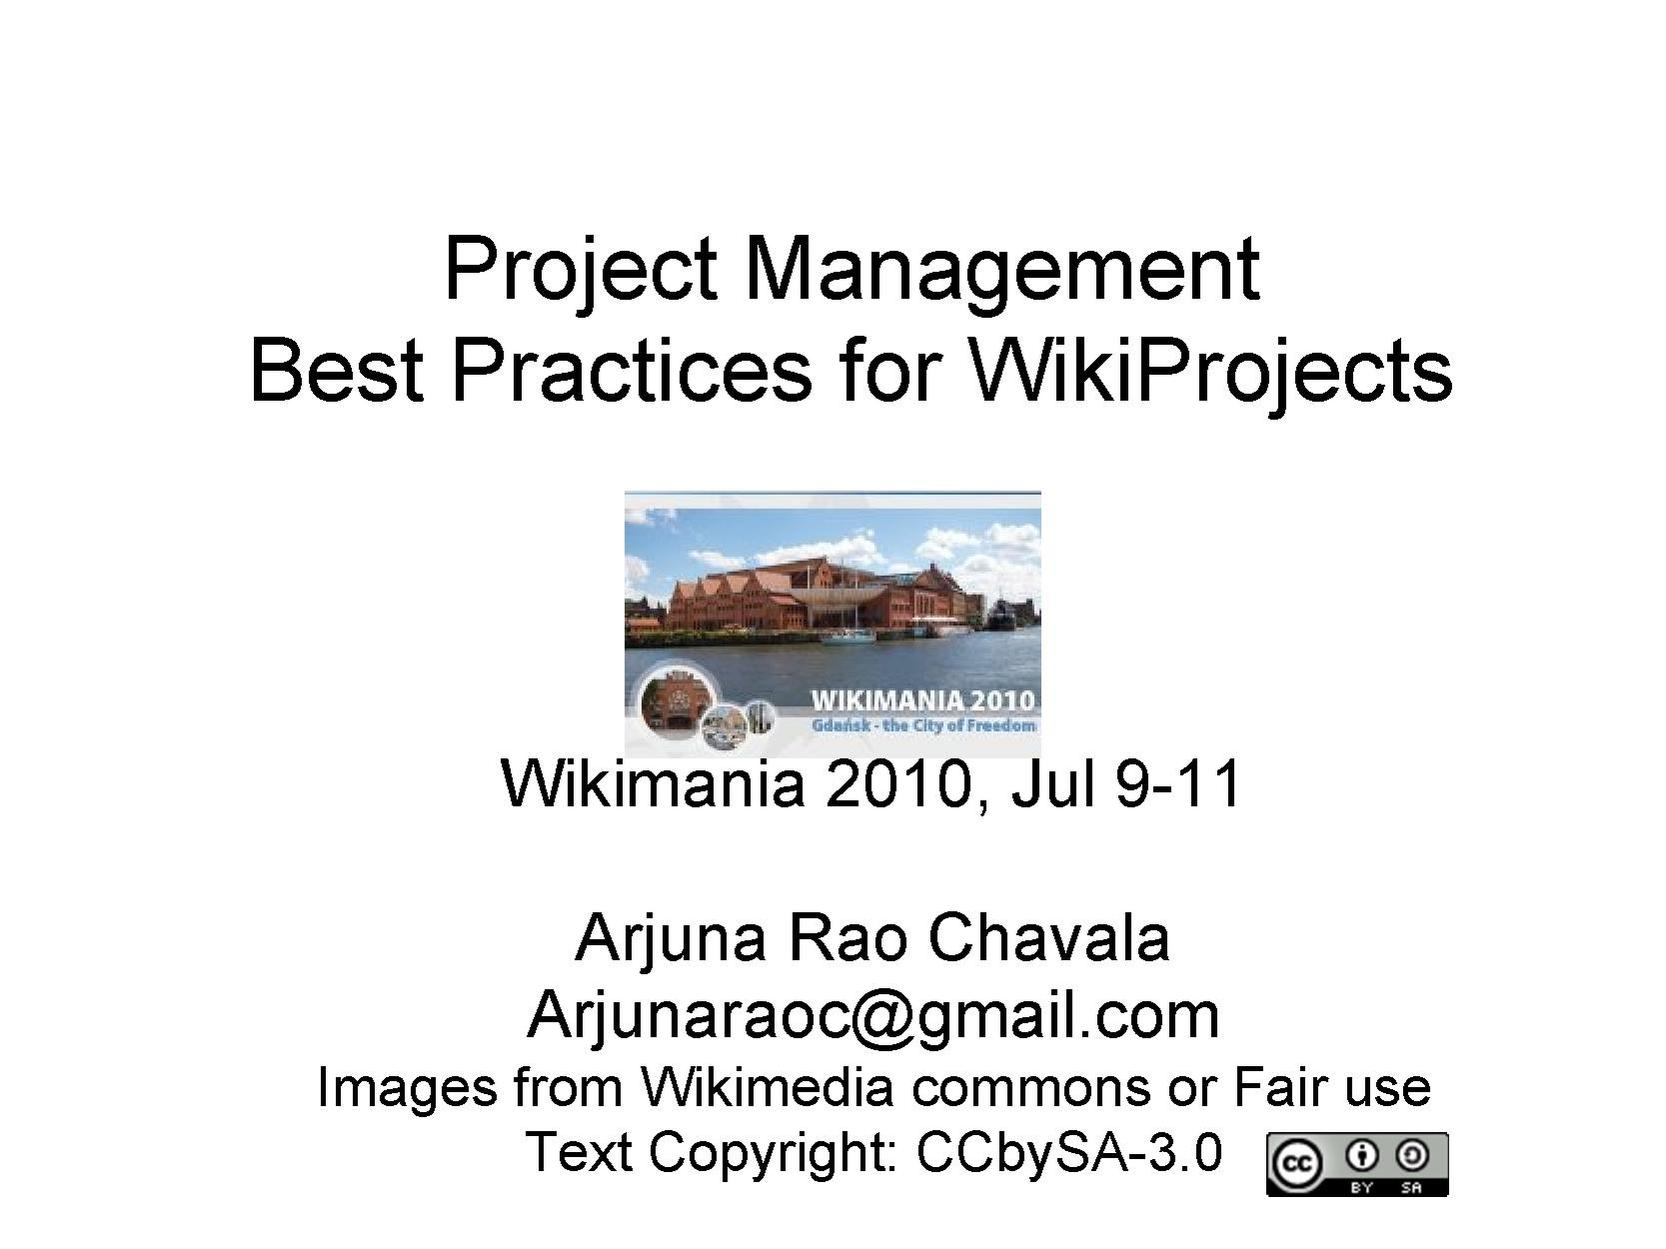 Project Management best practices for WikiProjects.pdf